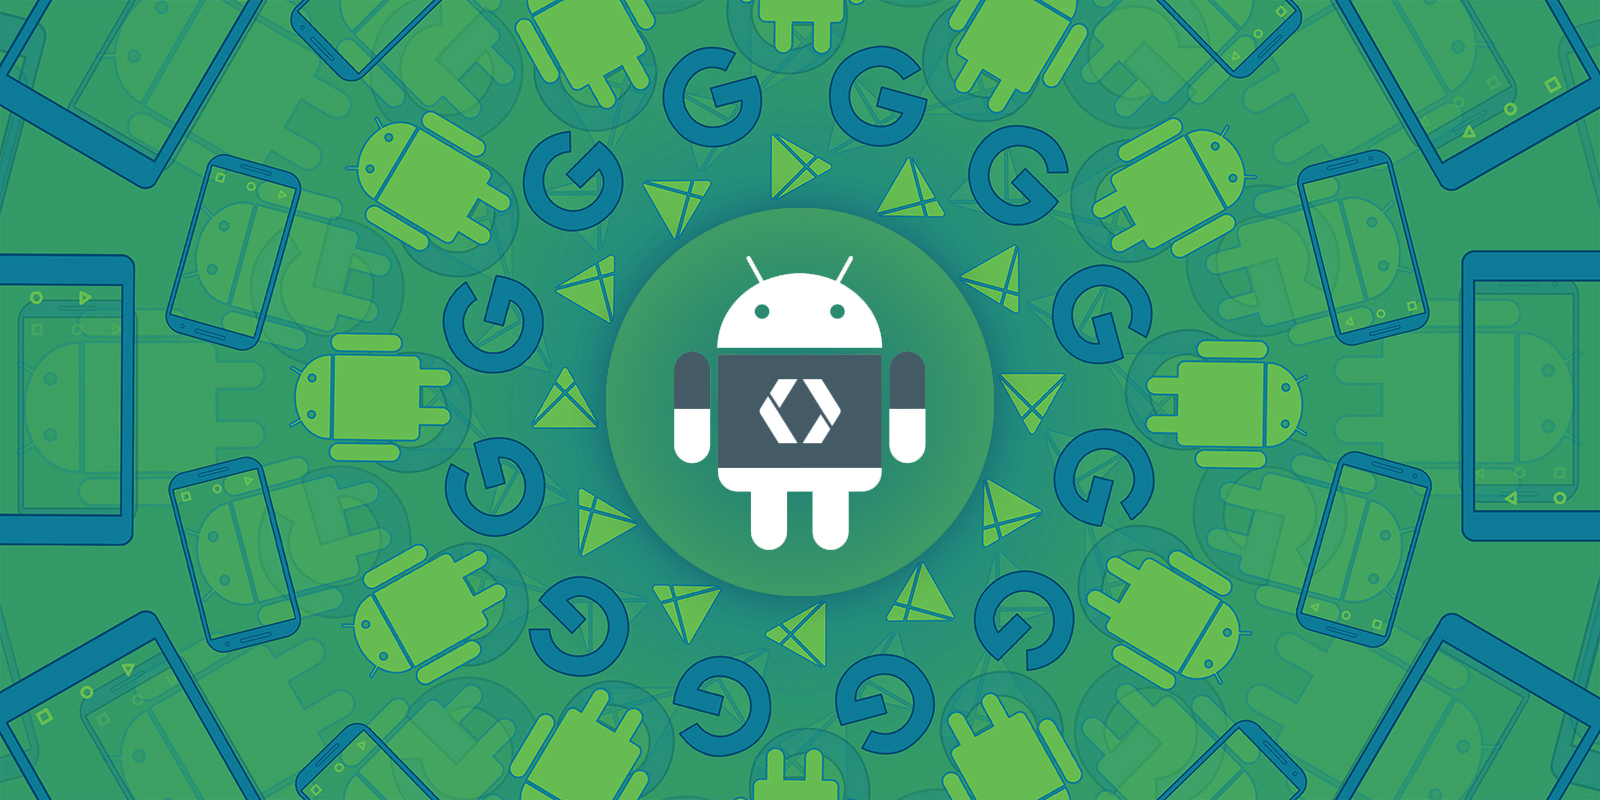 Google Play's new dev tools make it easier for developers to understand users